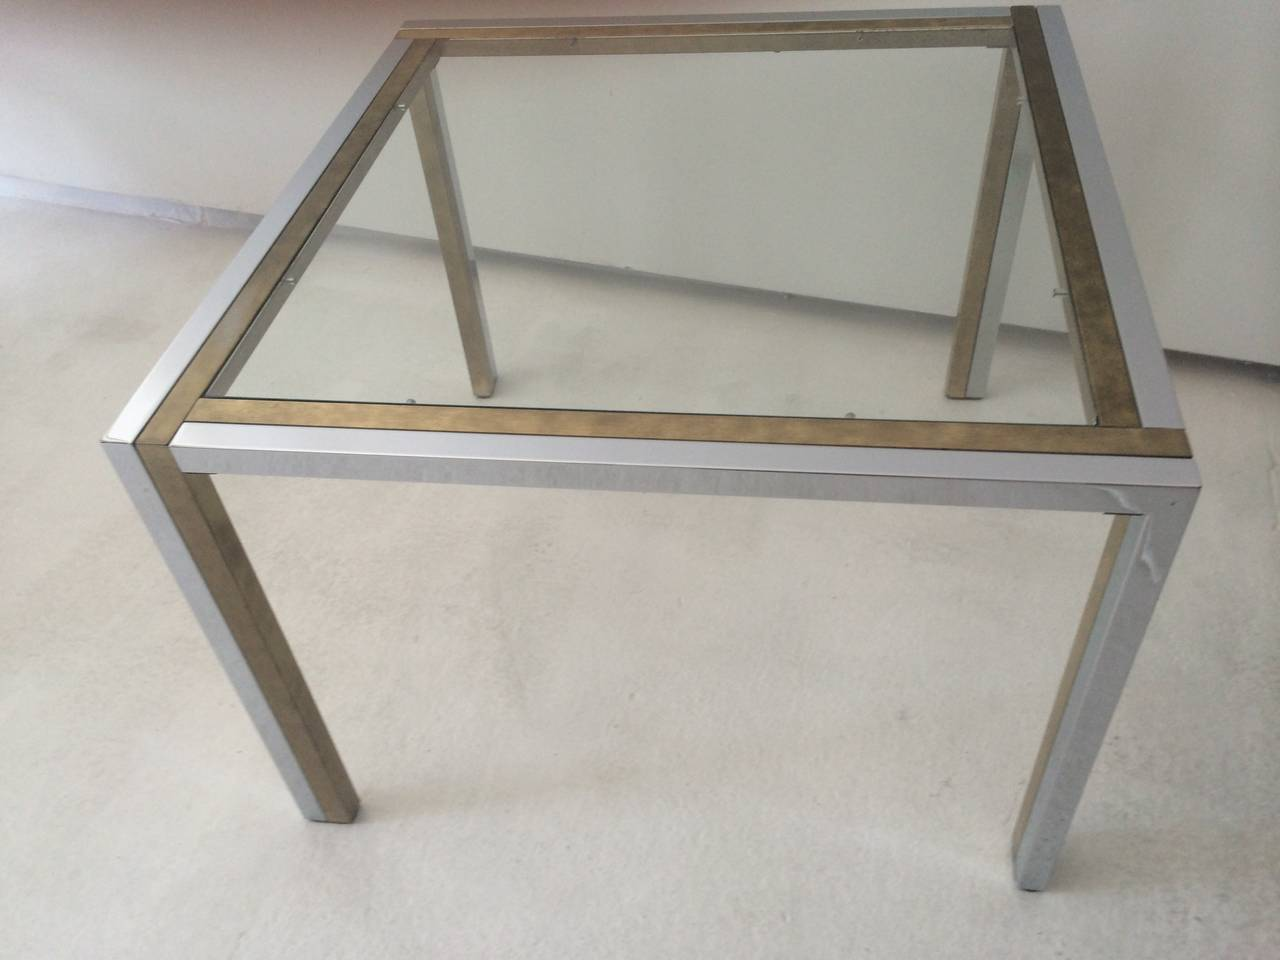 Most unique French table by Maison Jansen, 1970s.  Two-tone combination of brass and chrome with glass top.